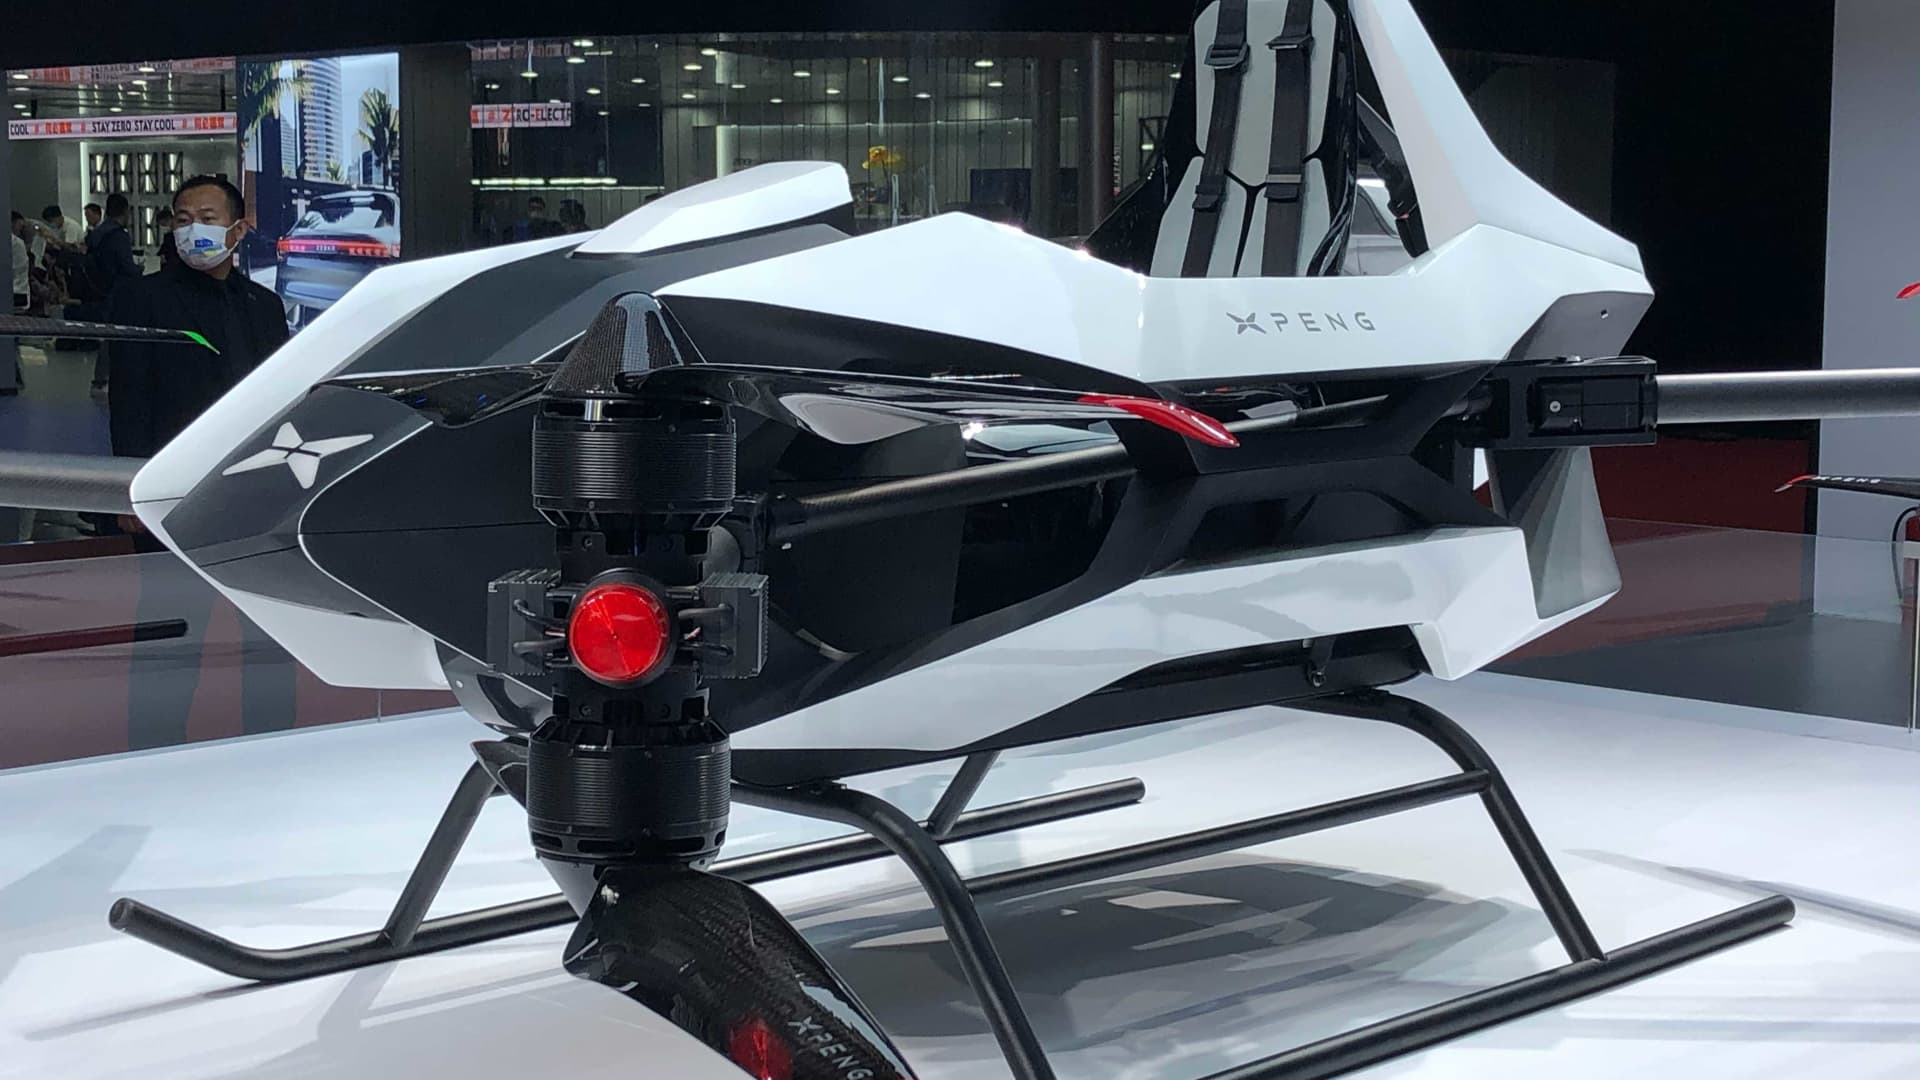 Less than half a year since revealing a flying vehicle prototype, Chinese electric car start-up Xpeng unveiled a second model at the Shanghai auto show in April 2021.